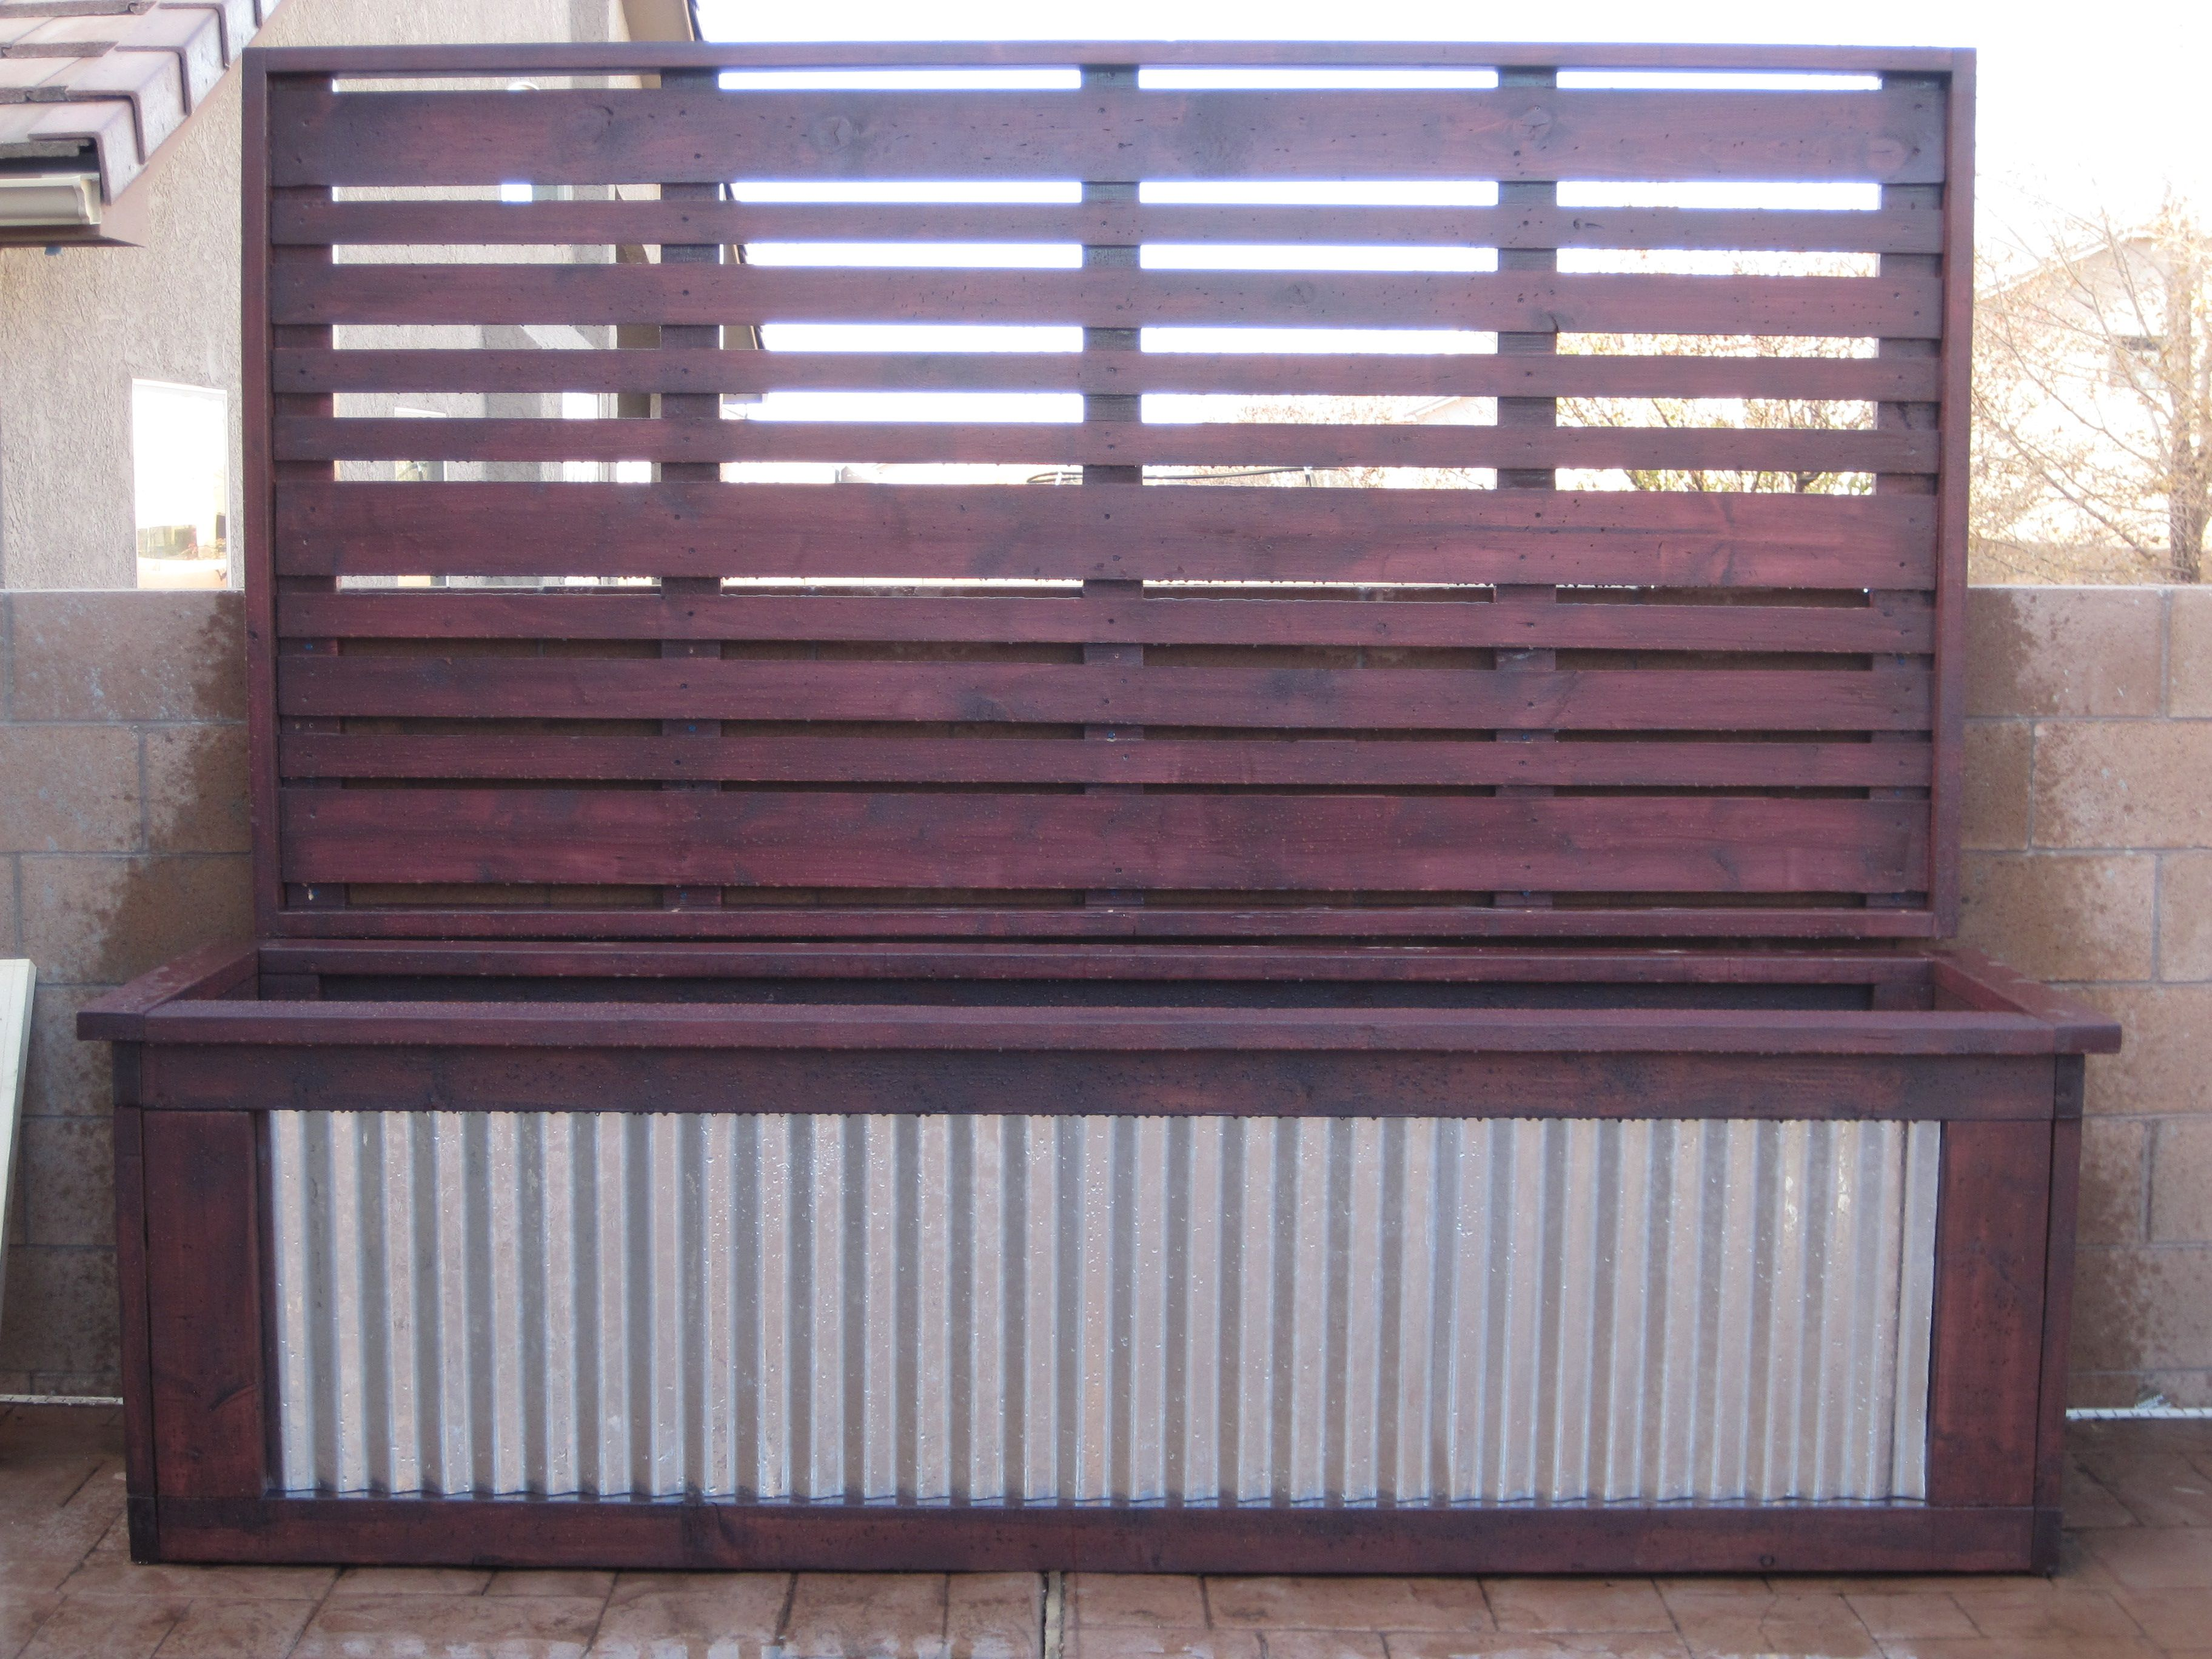 Planter box and matching privacy screen can 39 t wait to for Outdoor privacy screen planter